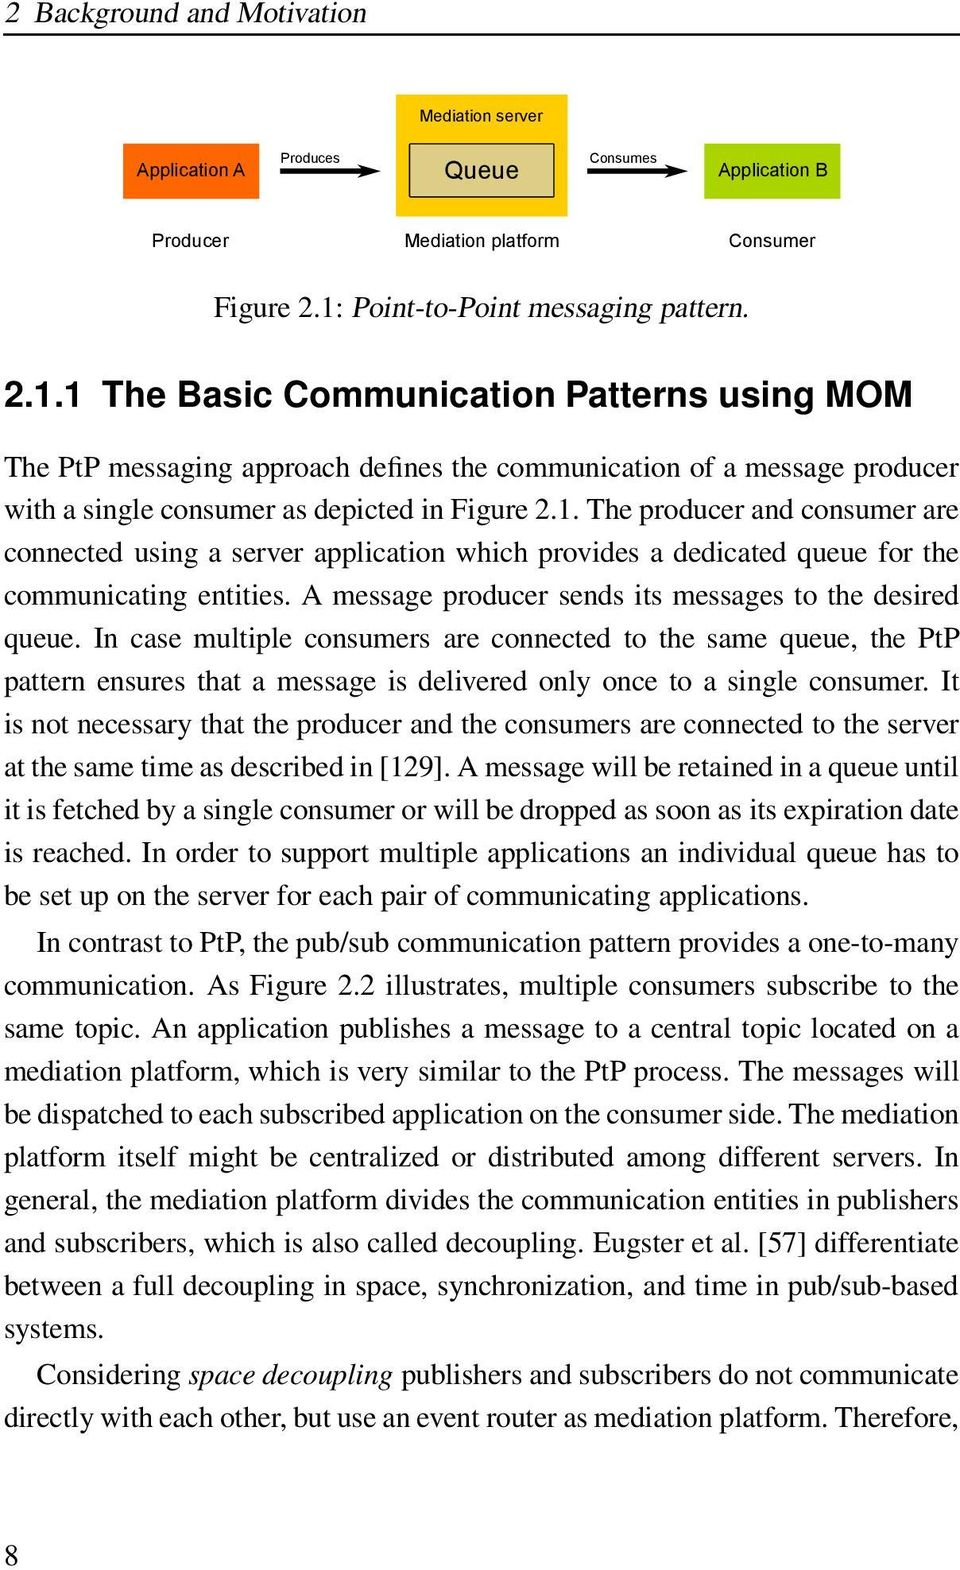 1 The Basic Communication Patterns using MOM The PtP messaging approach defines the communication of a message producer with a single consumer as depicted in Figure 2.1. The producer and consumer are connected using a server application which provides a dedicated queue for the communicating entities.